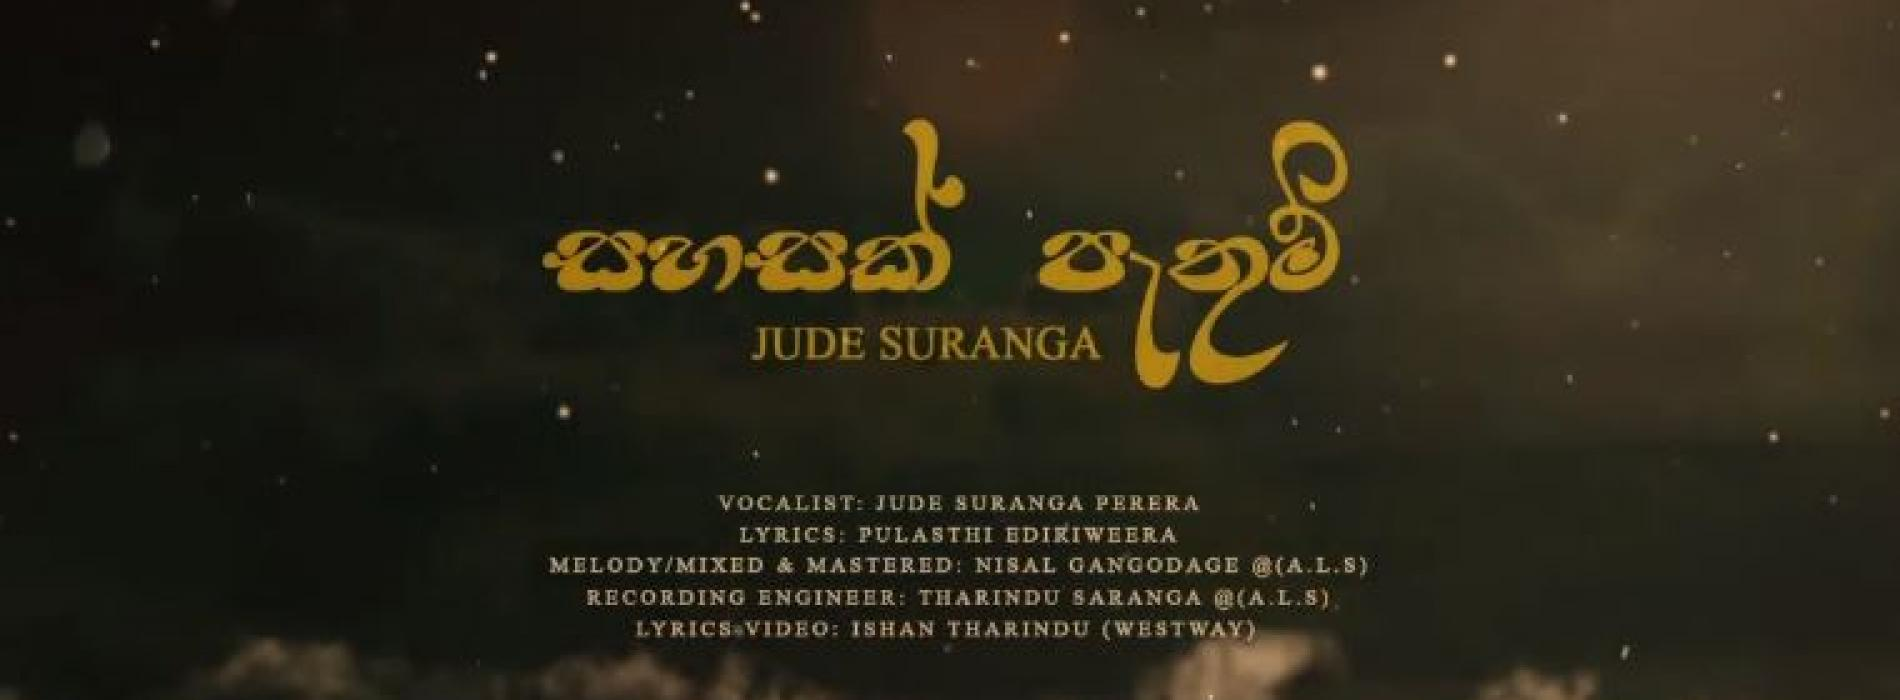 New Music : Sahasak Pathum By Jude Suranga Perera